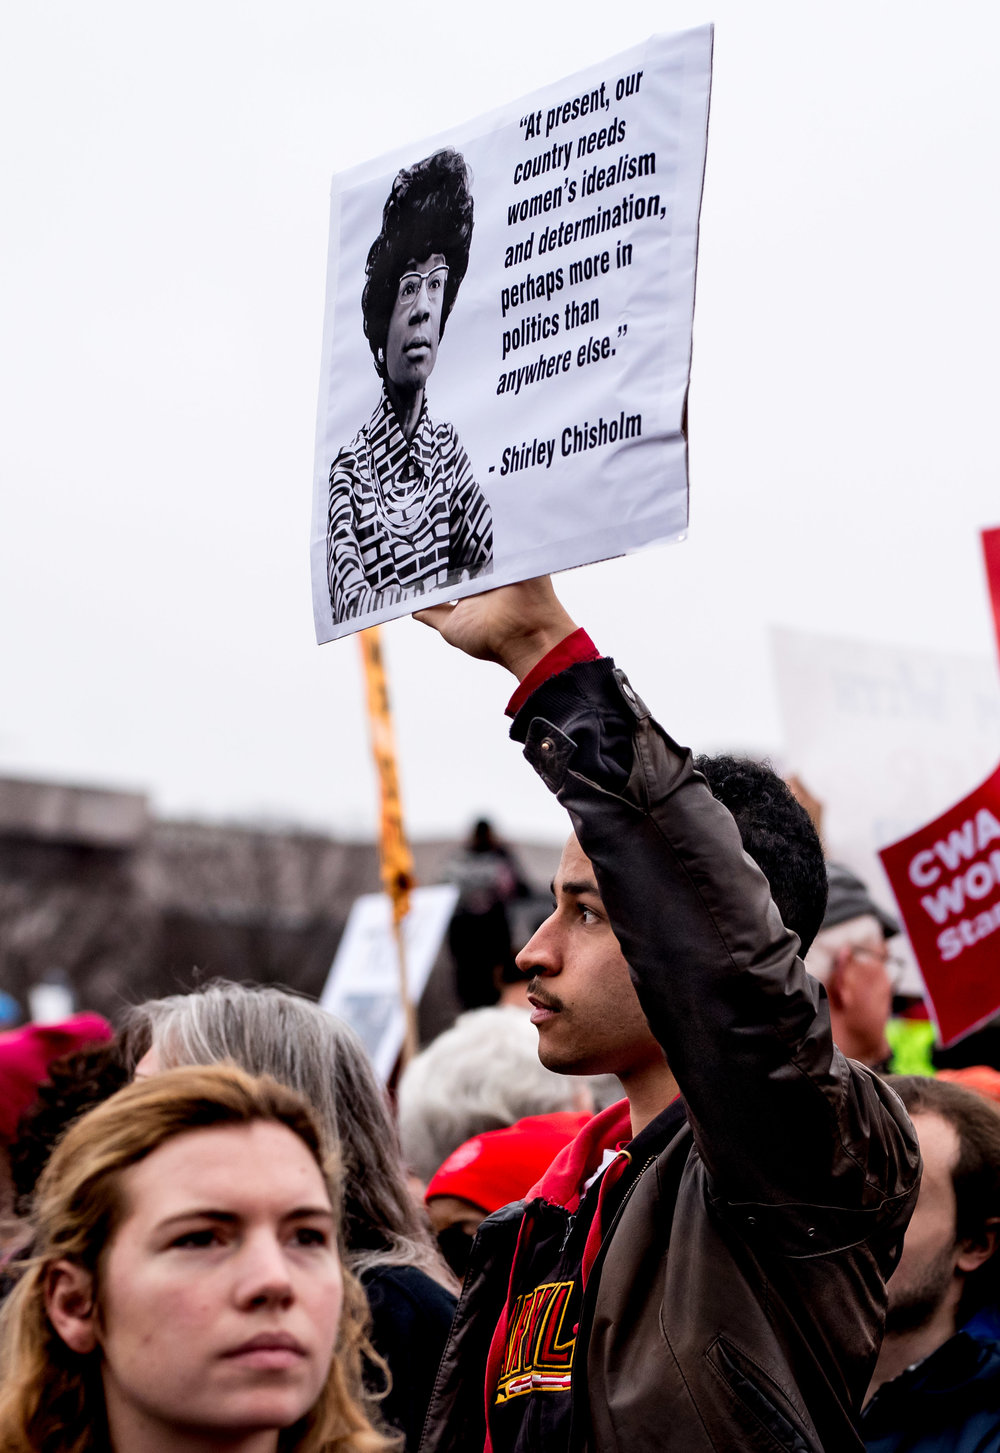 Women's-March-Photo-By-Tricia-Suriani-Ramsay-20.jpg